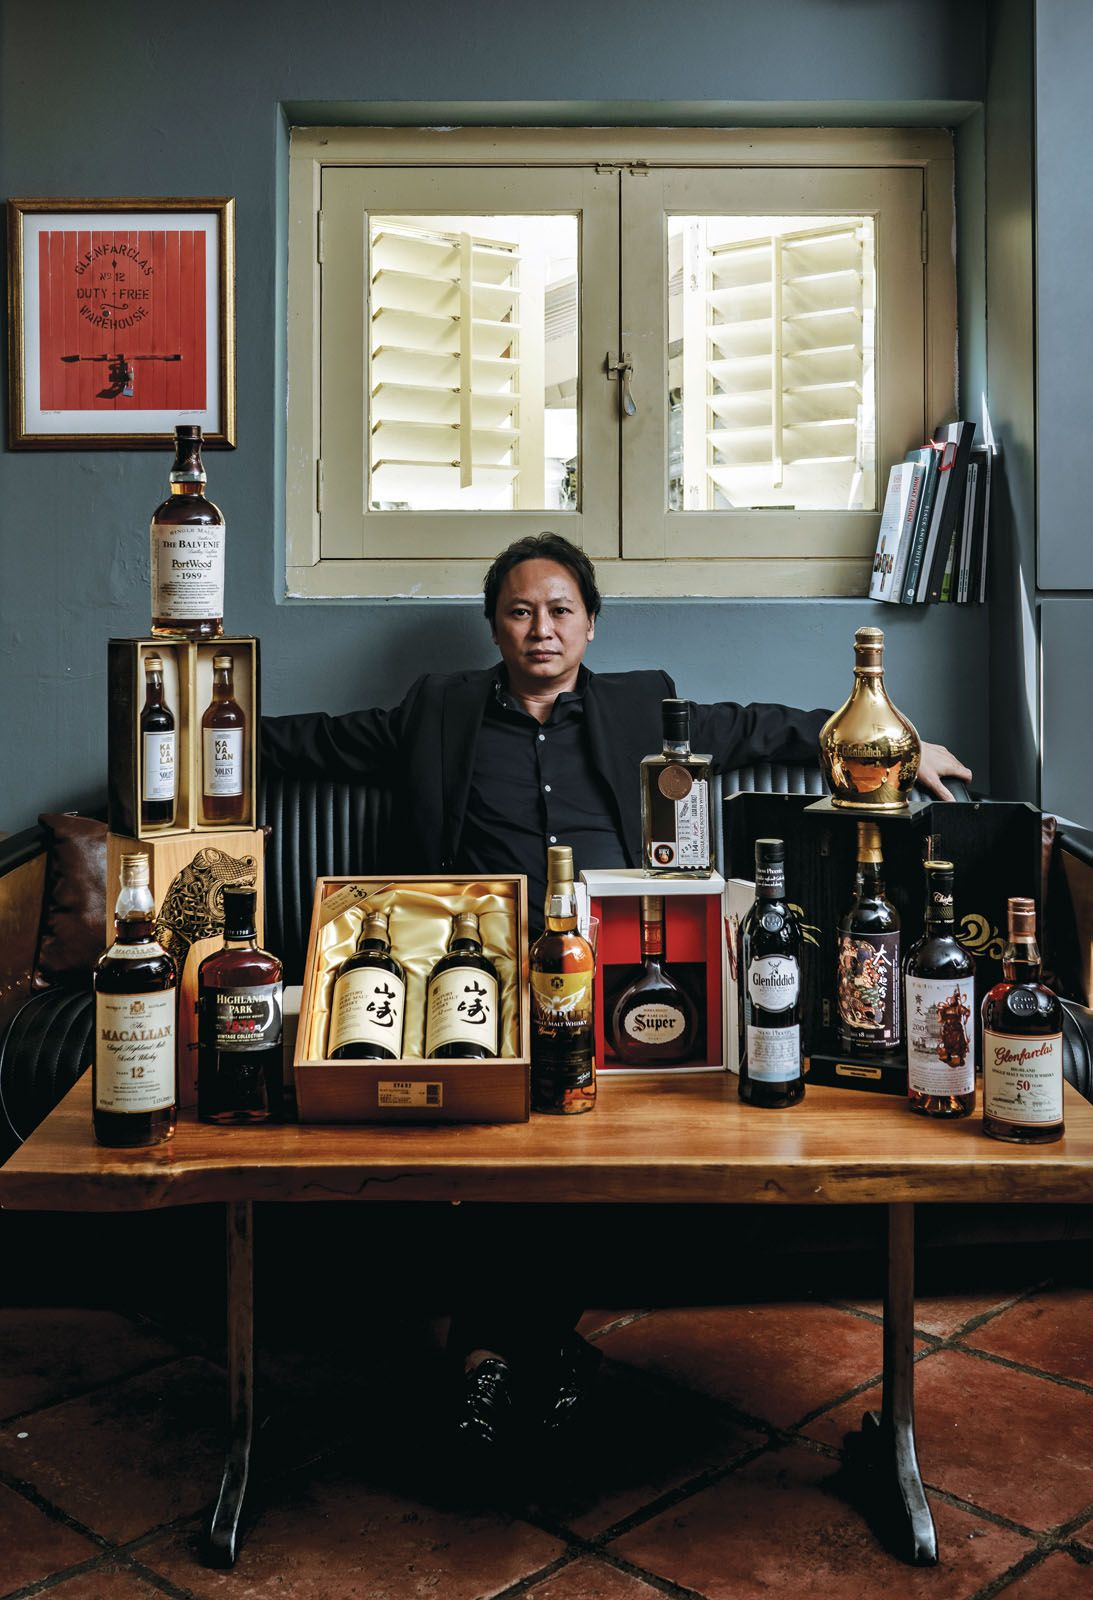 Watch: Keith Chong's 700-Strong Whisky Collection In 'Remarkable Living', A Singapore Tatler x CNA Luxury TV Series